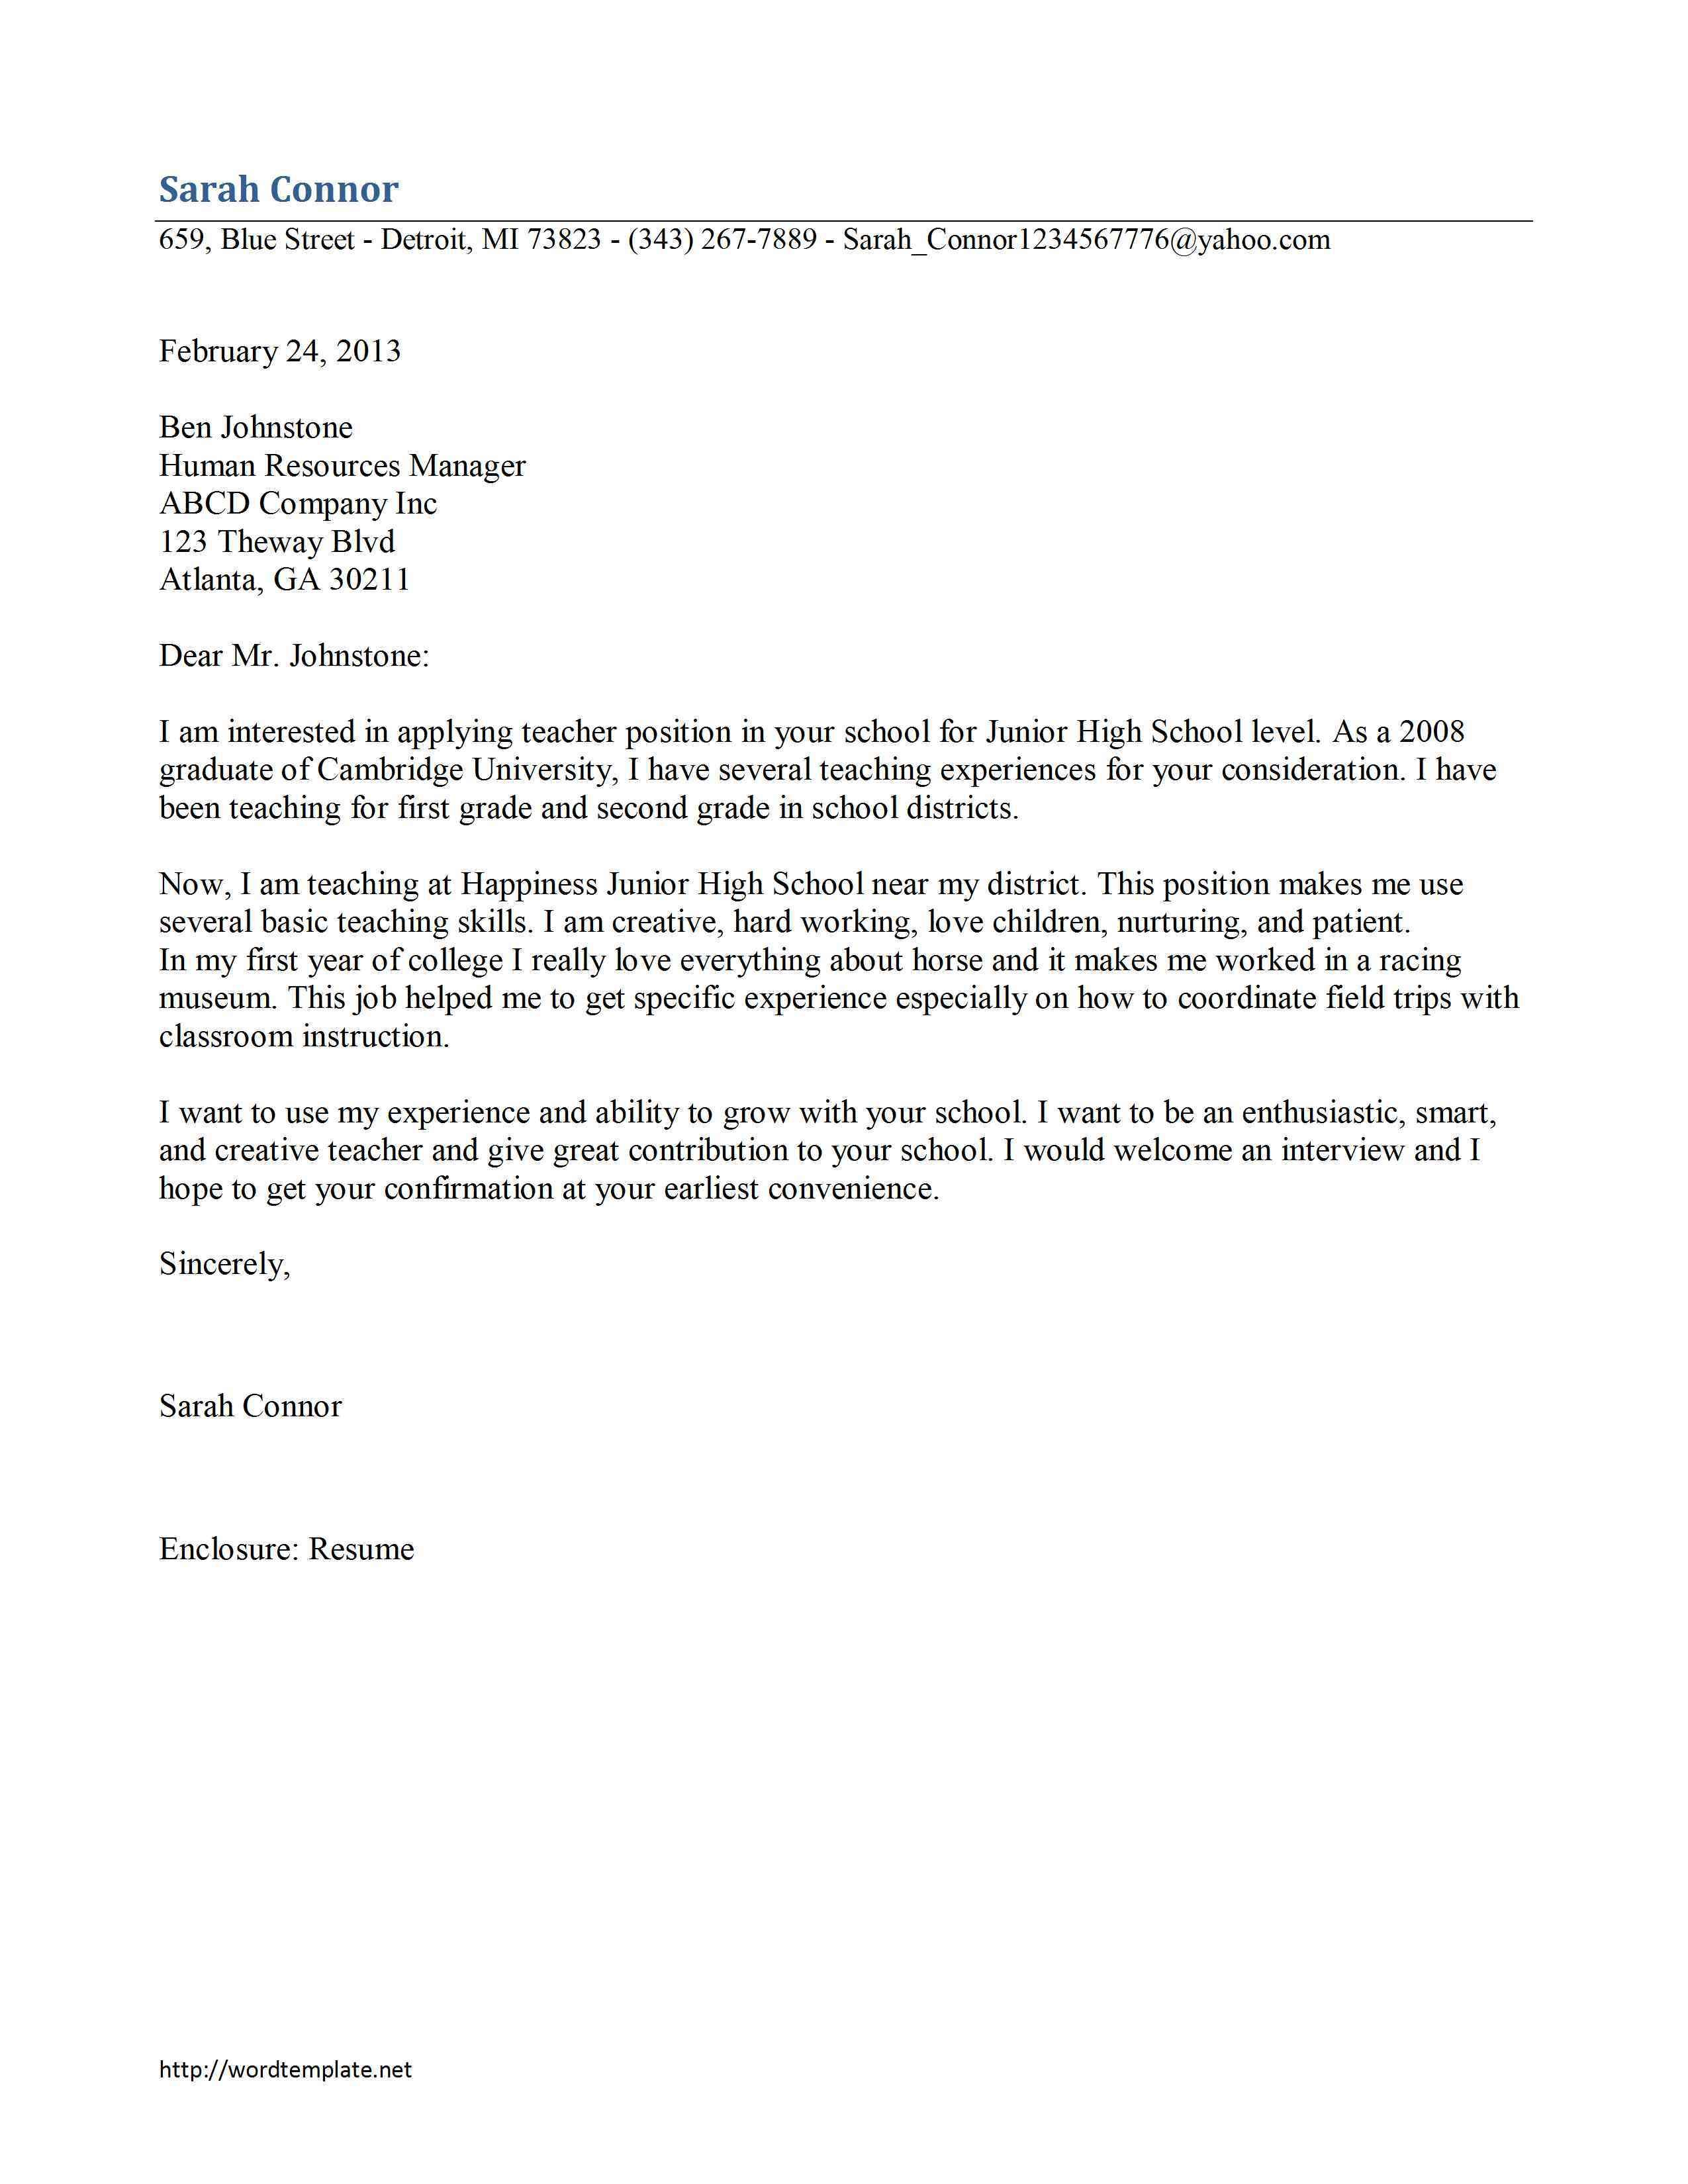 Final Notice before Legal Action Letter Template Uk - Application Letter for Experience Certificate for Teacher Penn State